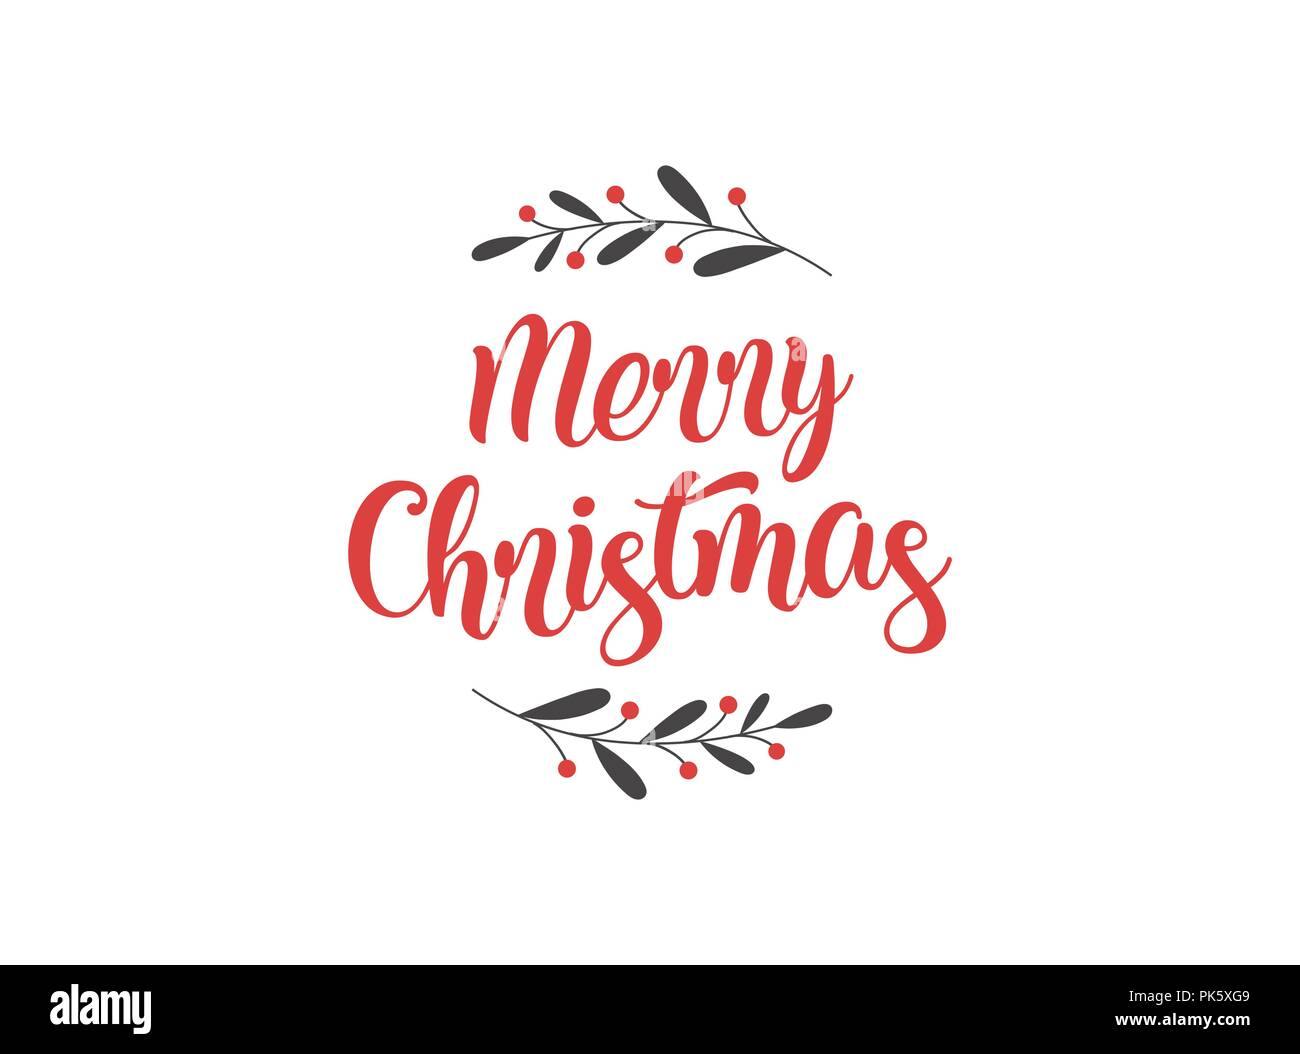 Merry Christmas Background with Typography, Lettering. Greeting card, banner and poster - Stock Image